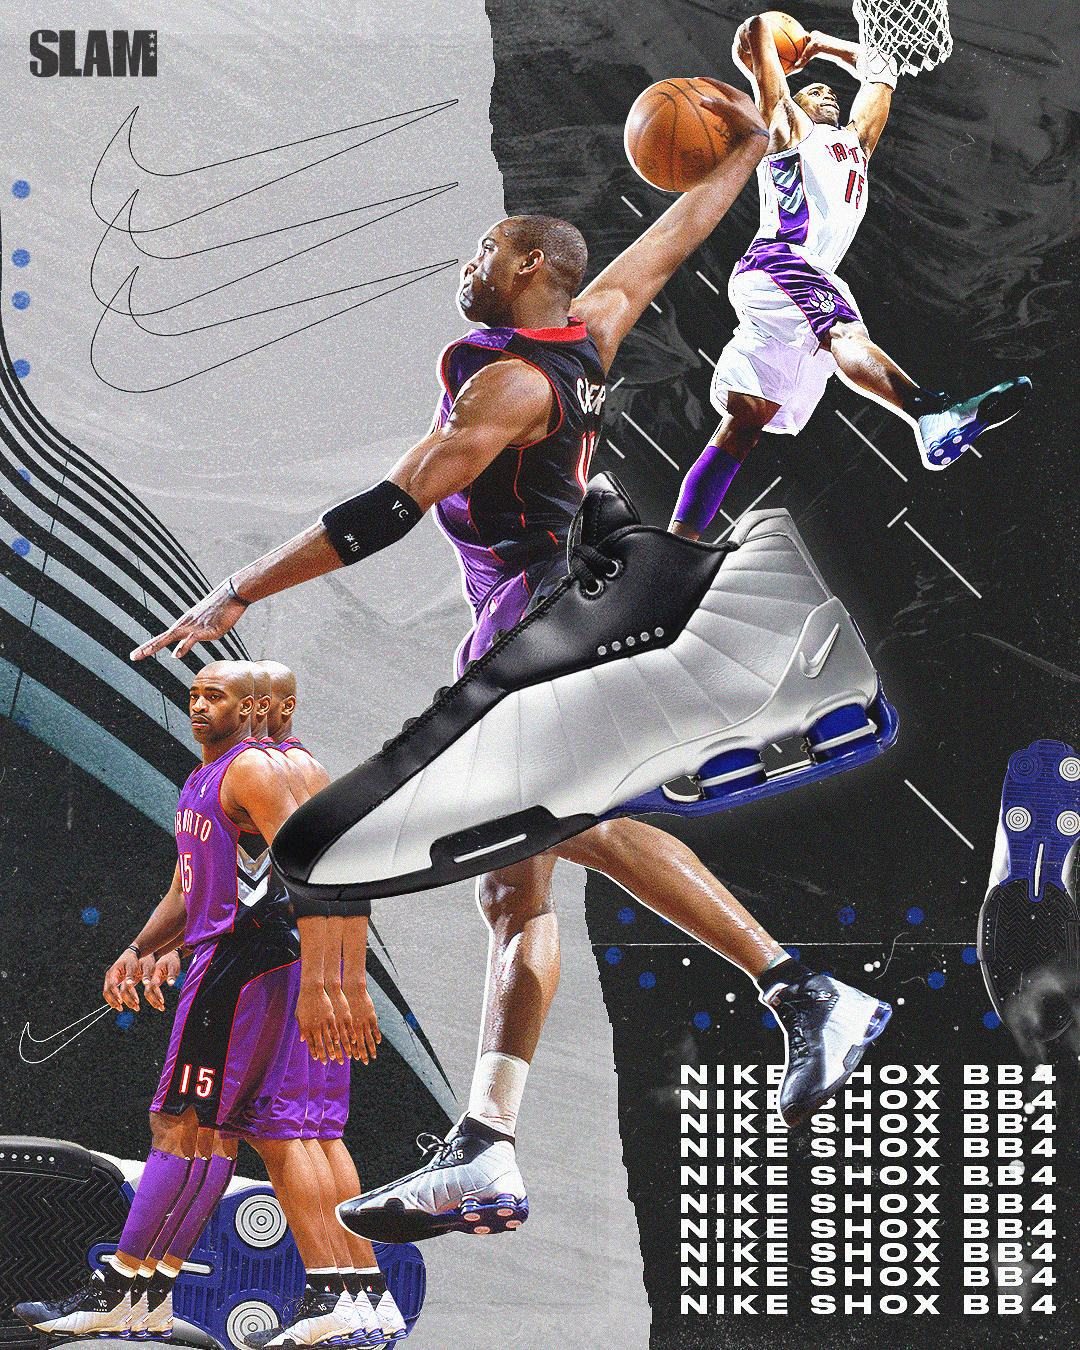 VINCE CARTER - NIKE SHOX BB4 on Behance